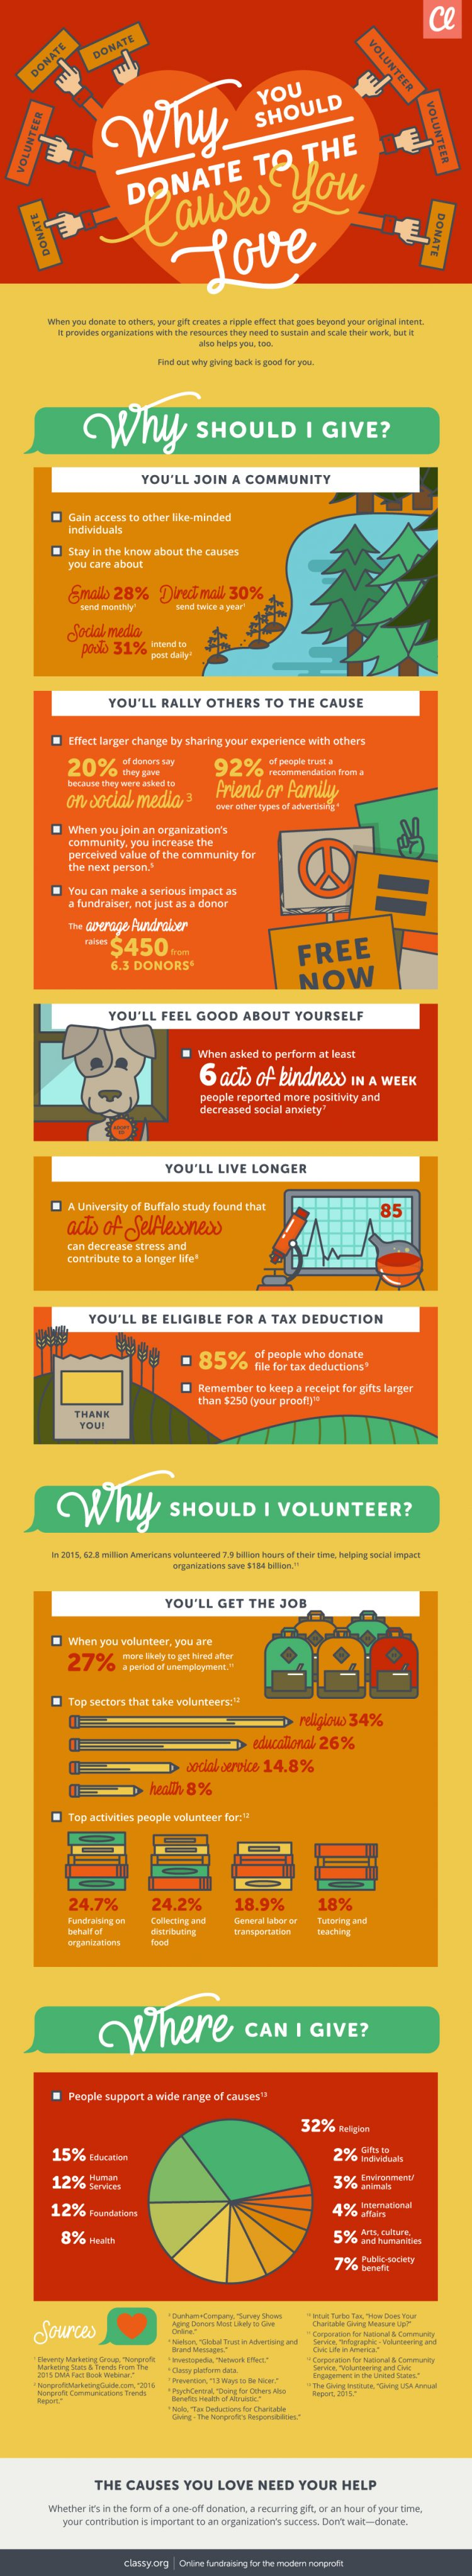 Infographic on why you should donate to the cause you love.